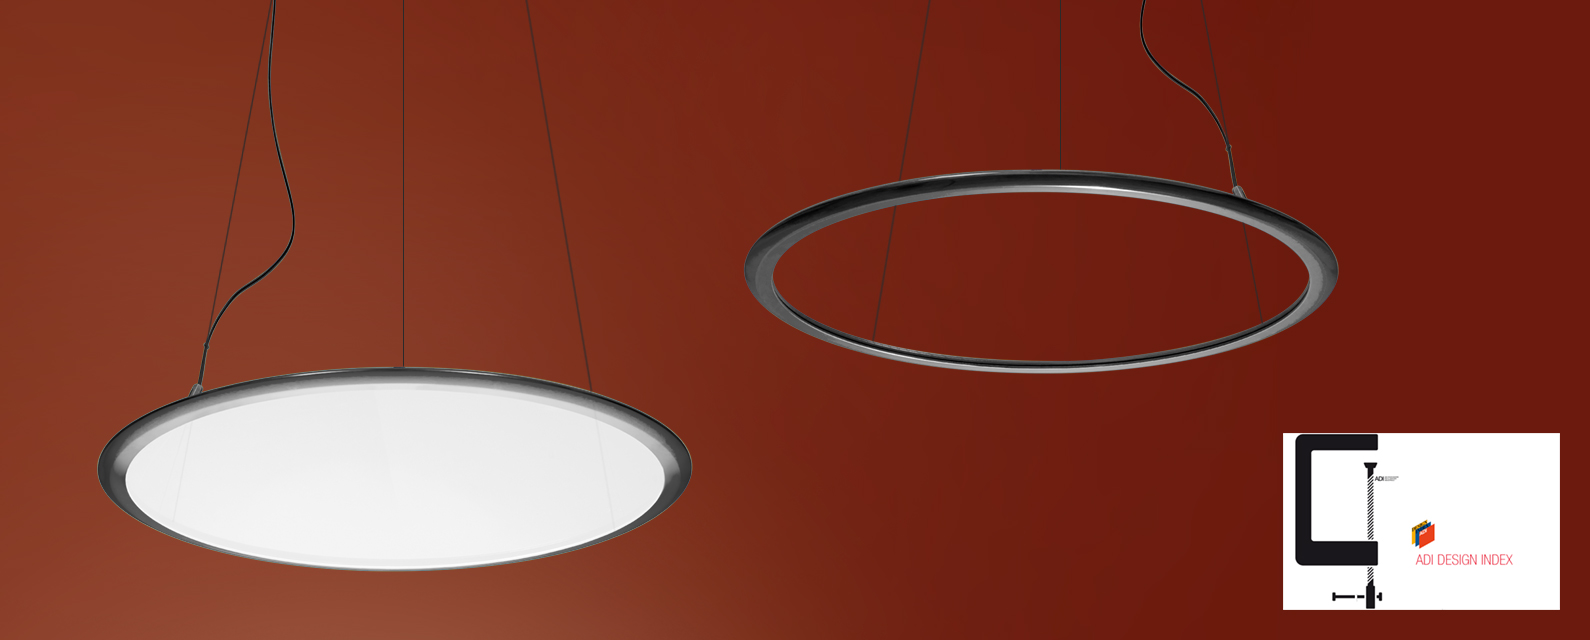 Artemide-Discovery-ADI-Design-Index